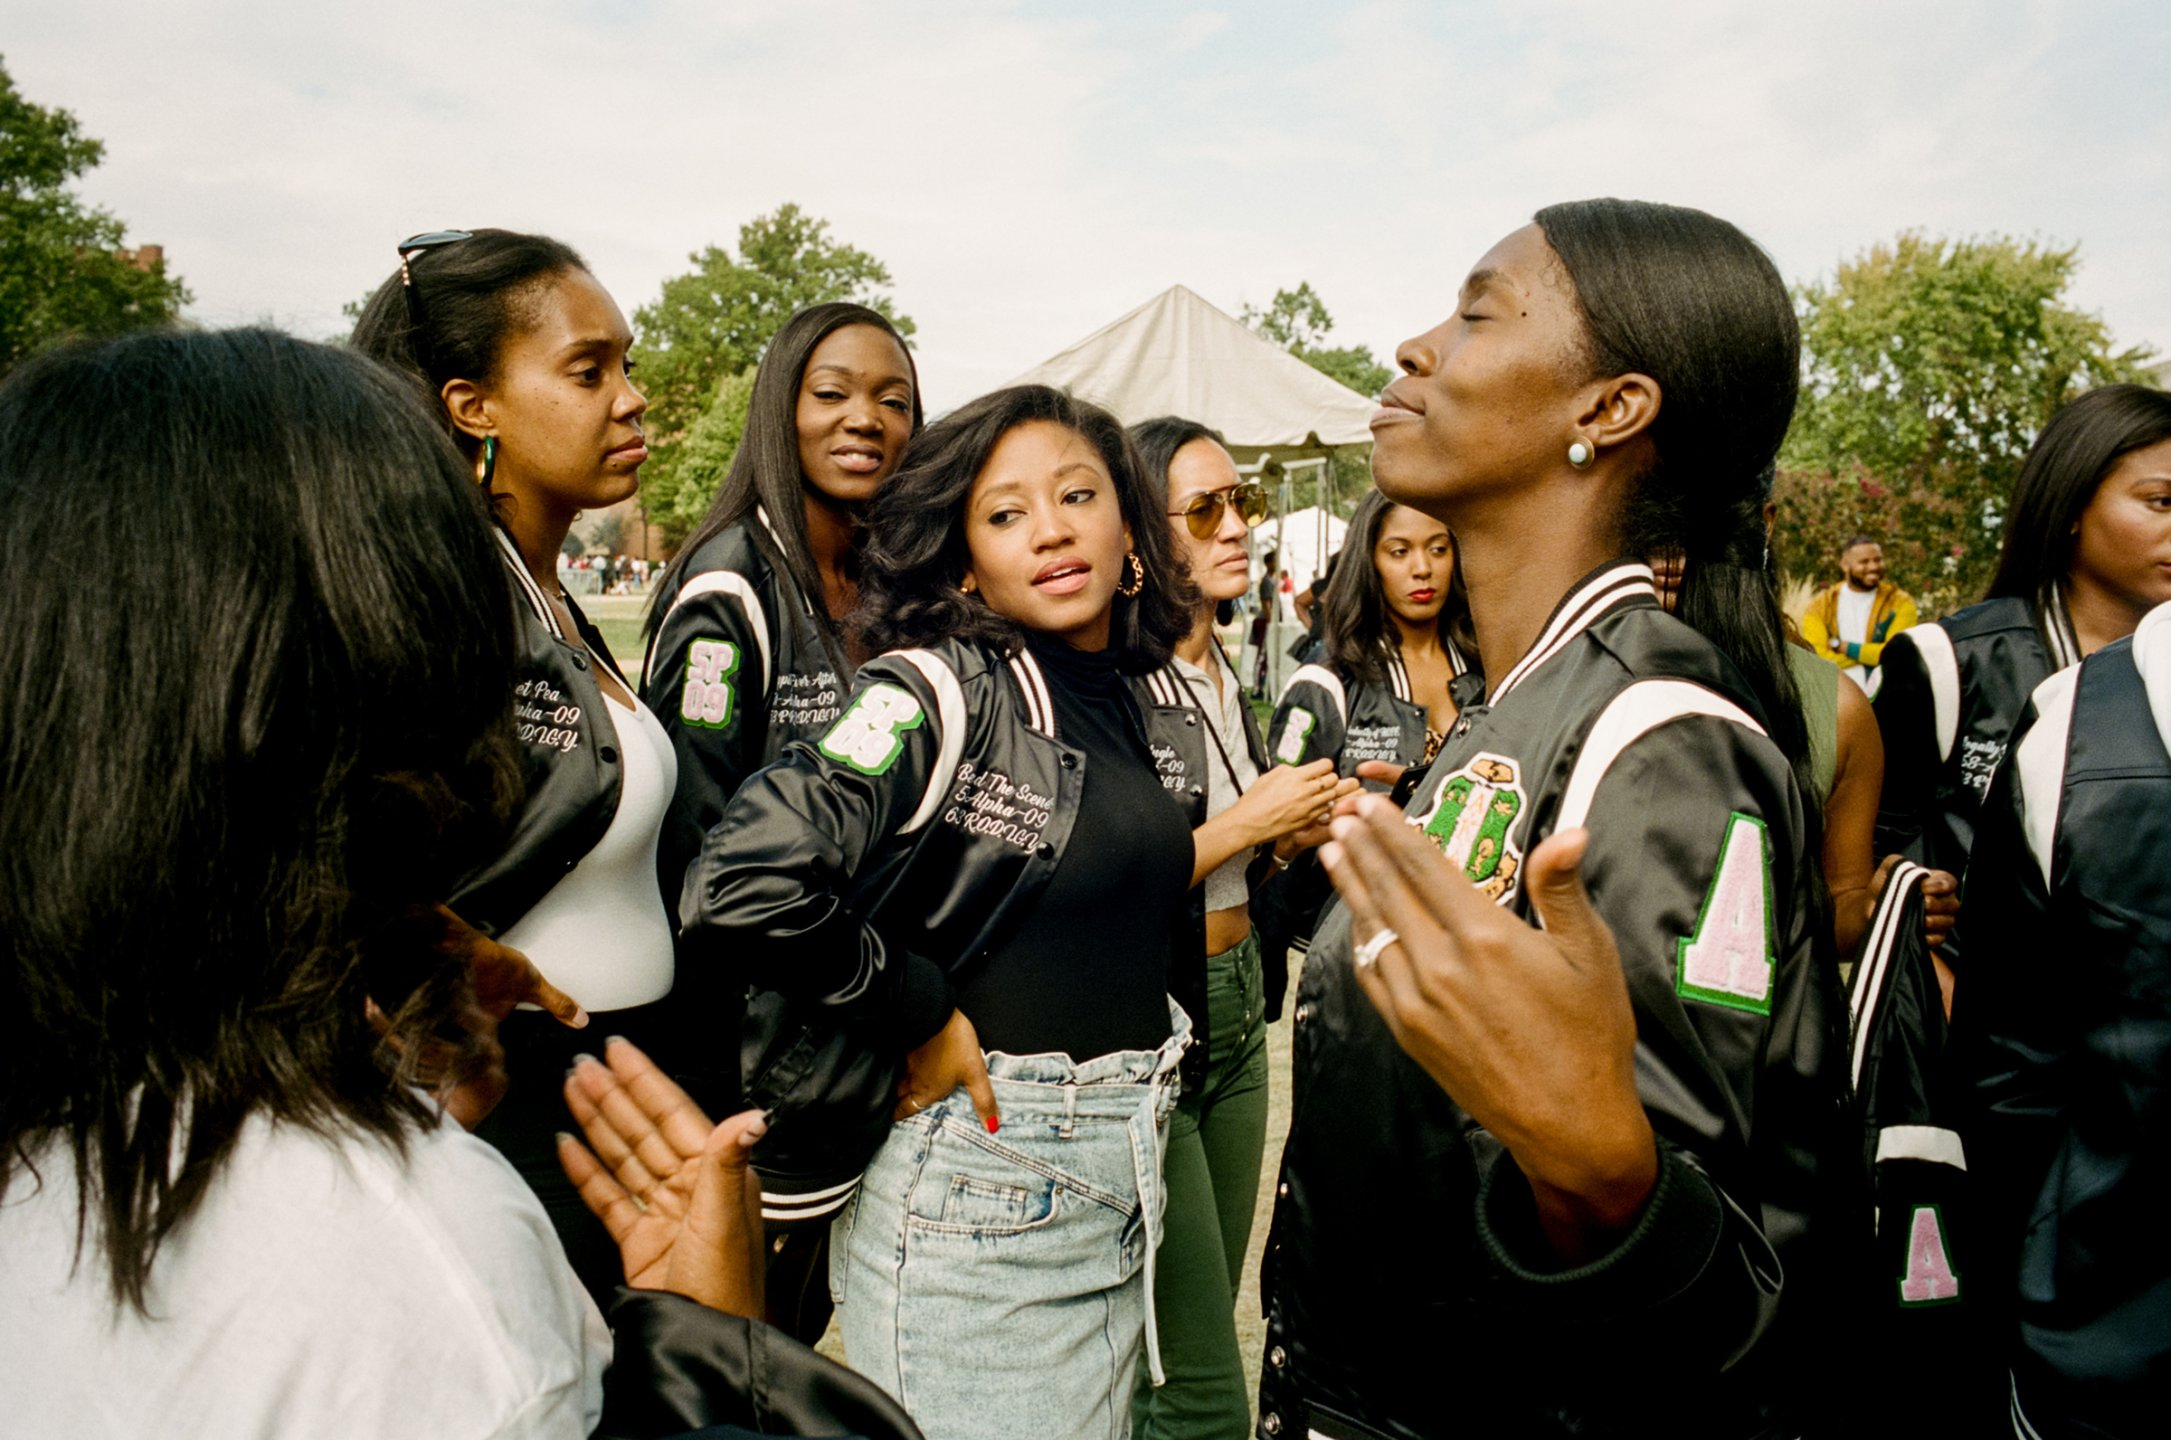 Members of Alpha Kappa Alpha, America's first black sorority, during homecoming at Howard University in Washington, D.C. The sorority was founded on the campus in 1908.